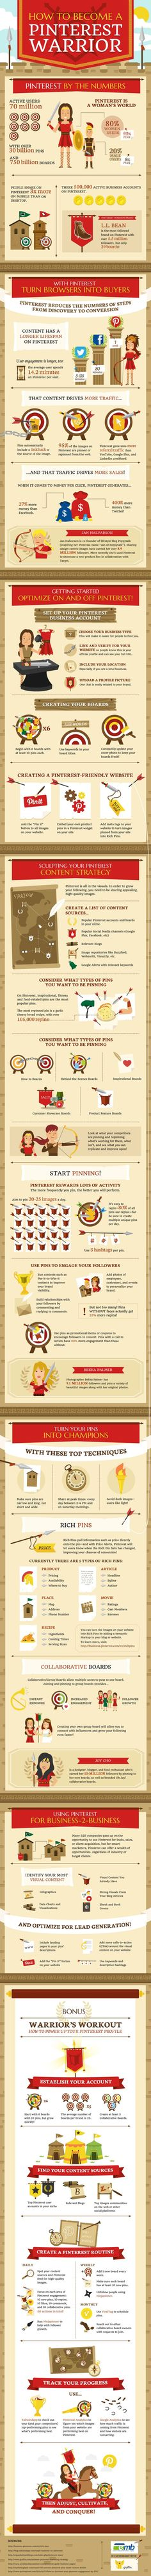 How to Become a Pinterest Warrior: #SocialMediaMarketing #Pinterest - #infographic